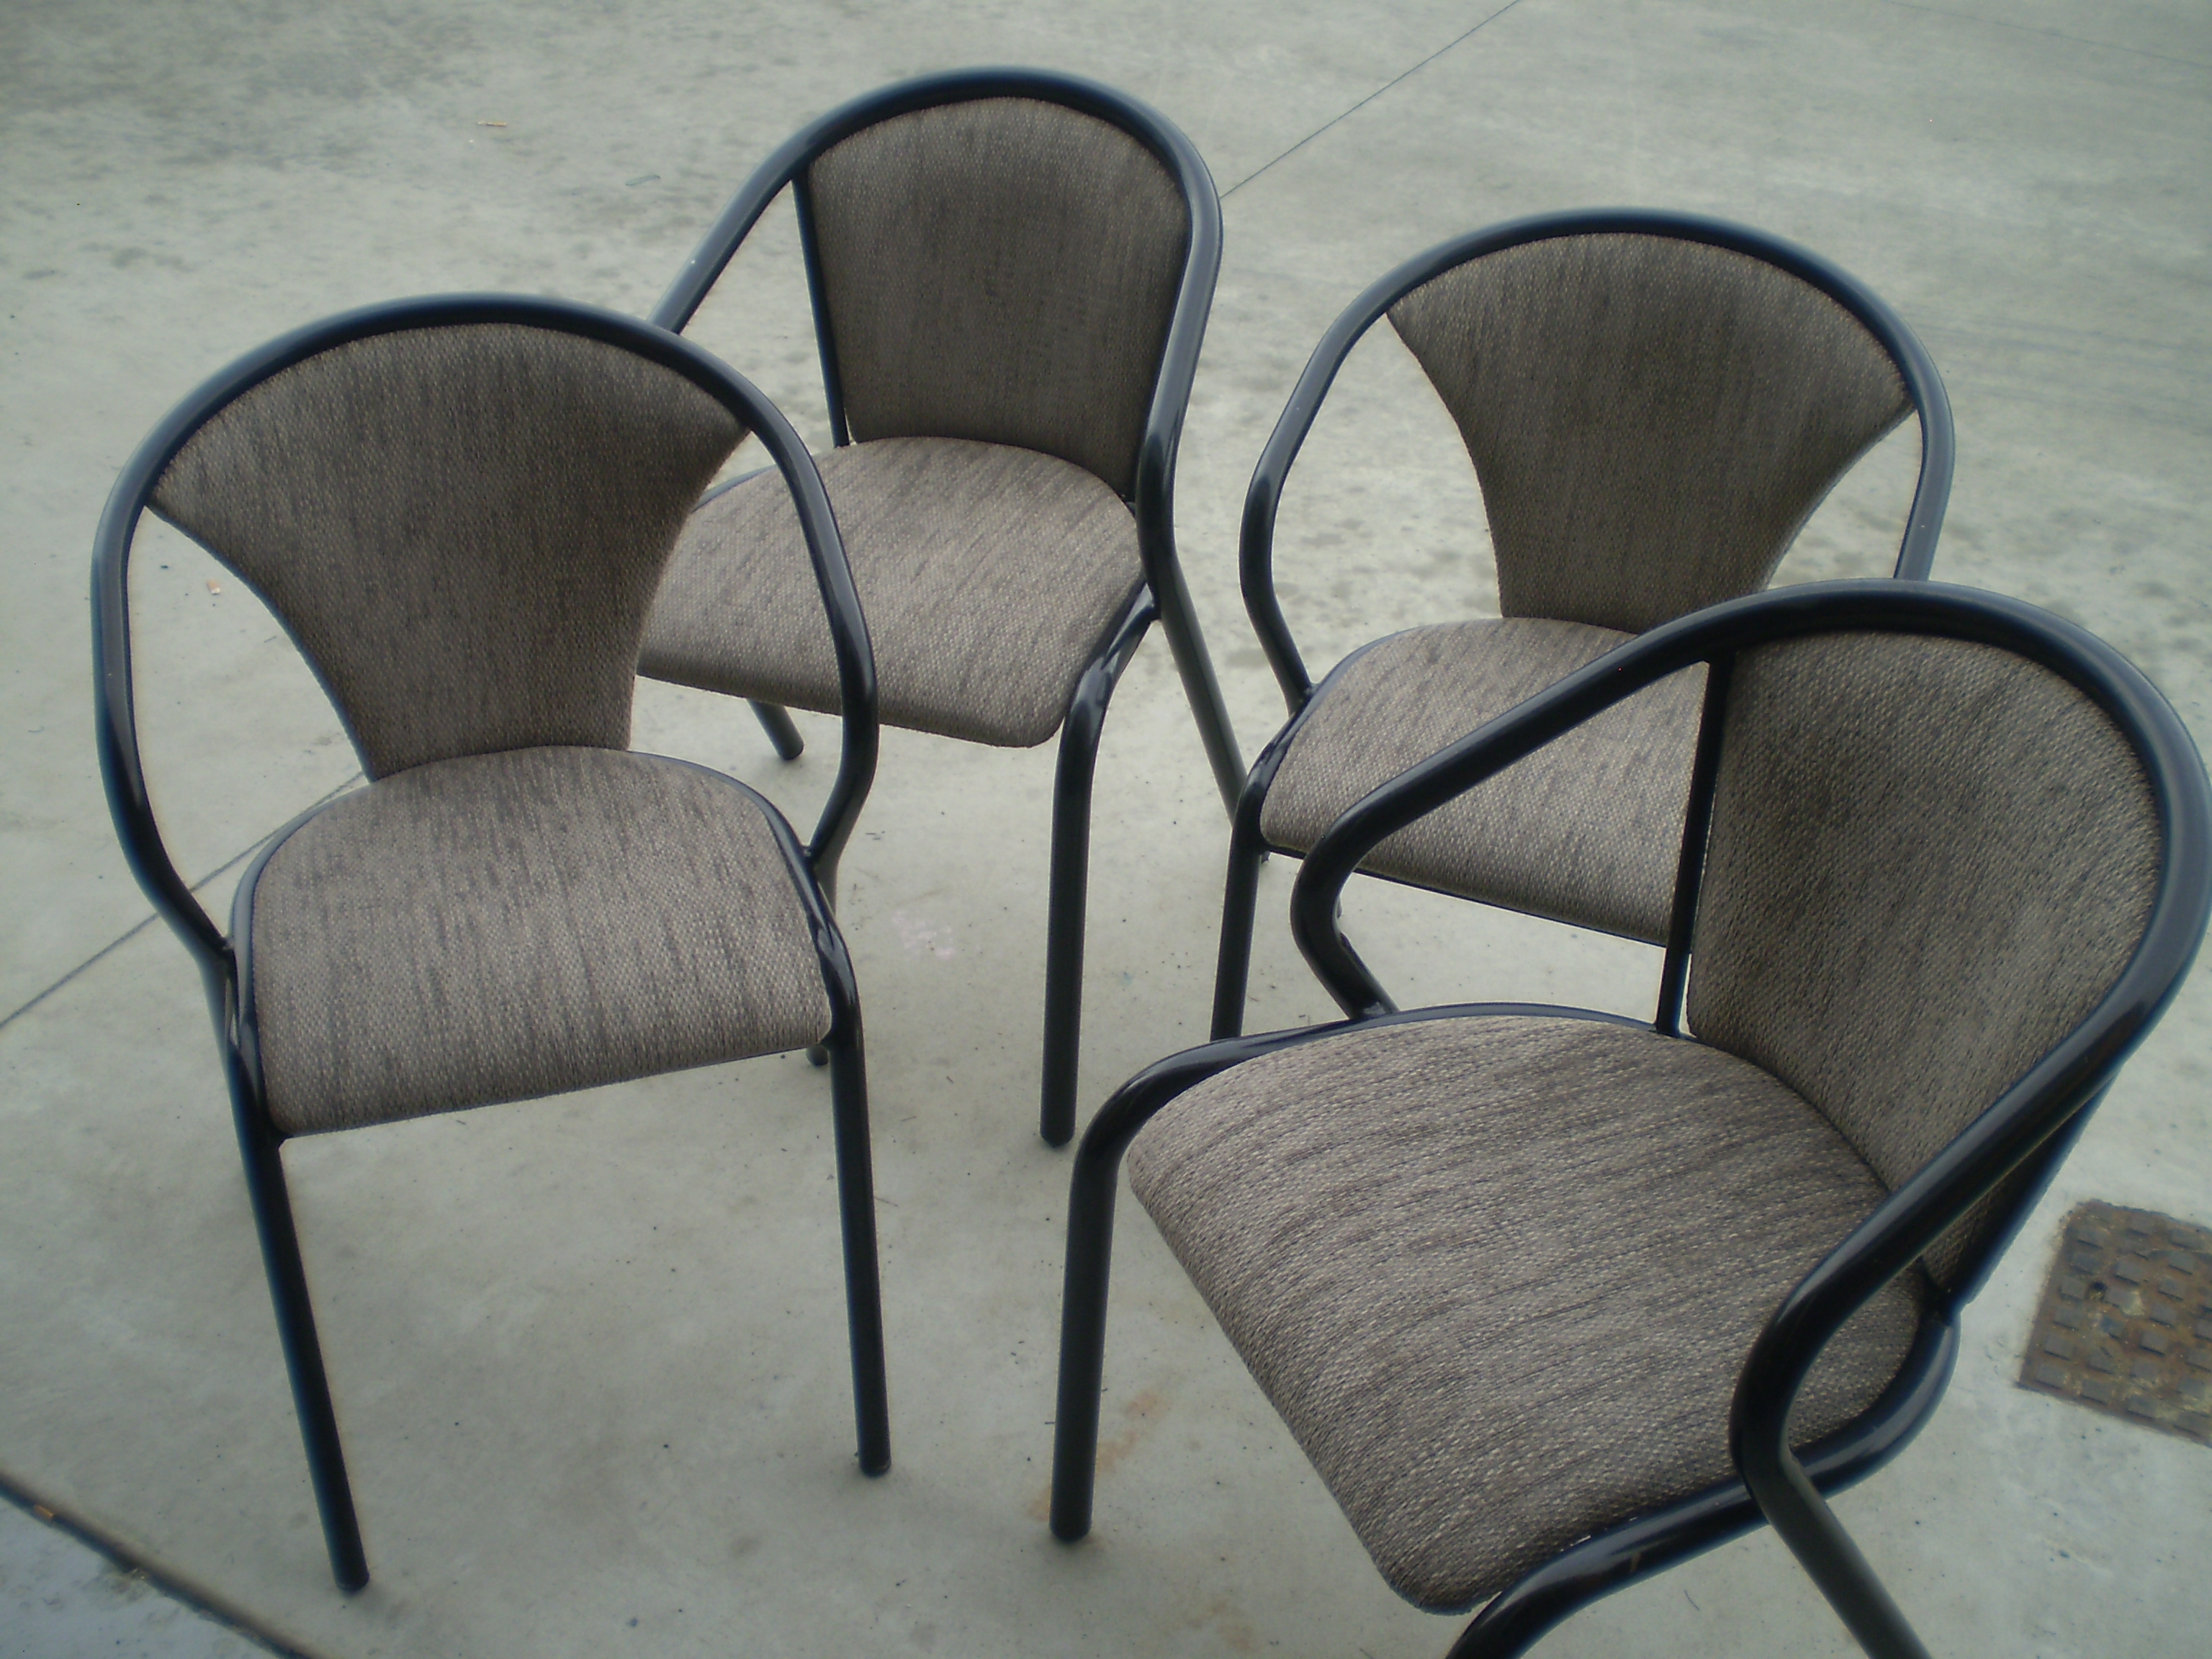 bistro chair reupholstery recovered in hardwearing commercial grade